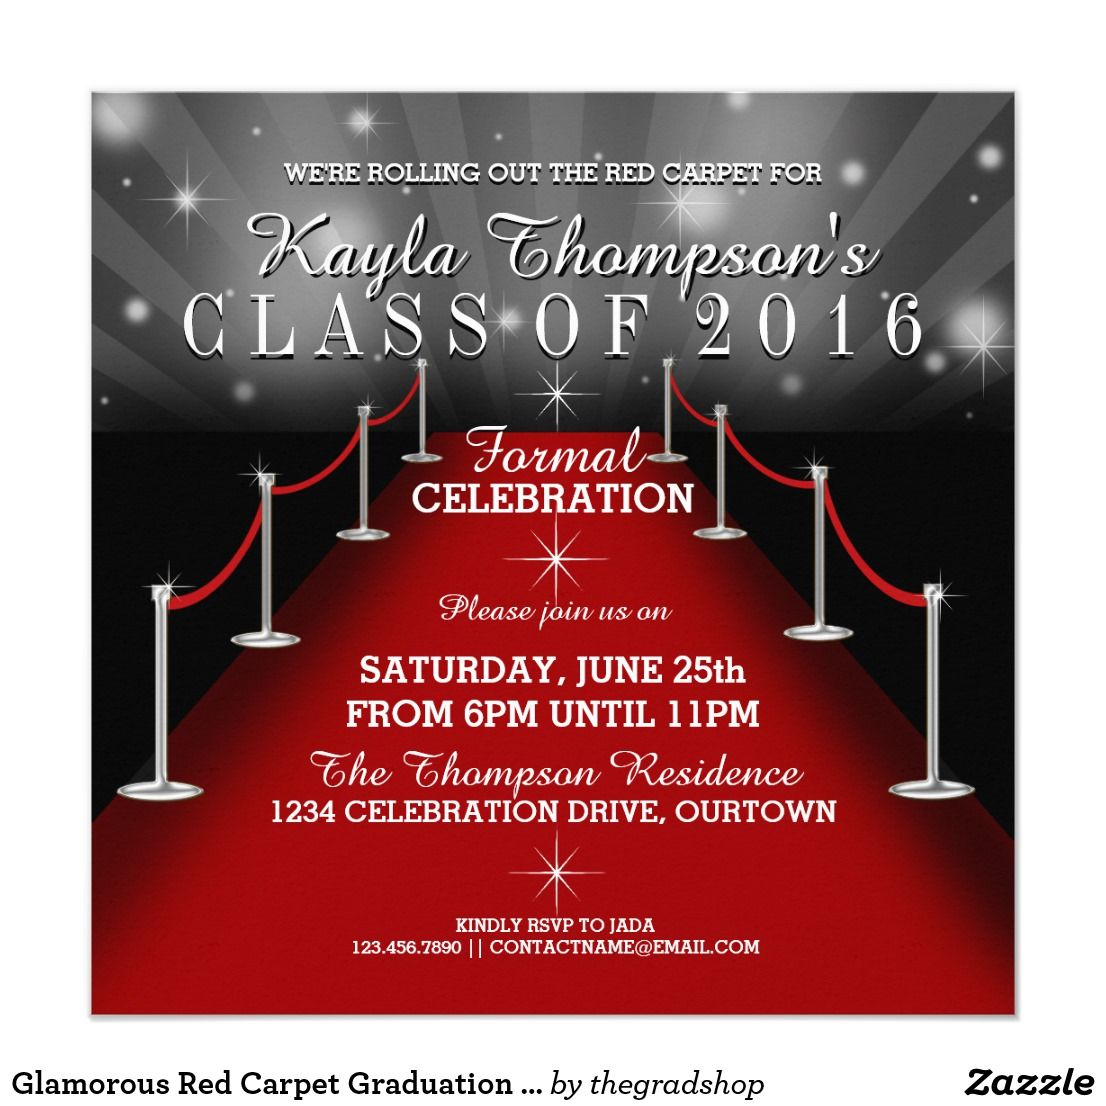 Glamorous Red Carpet Graduation Party Invitations | Graduation ...